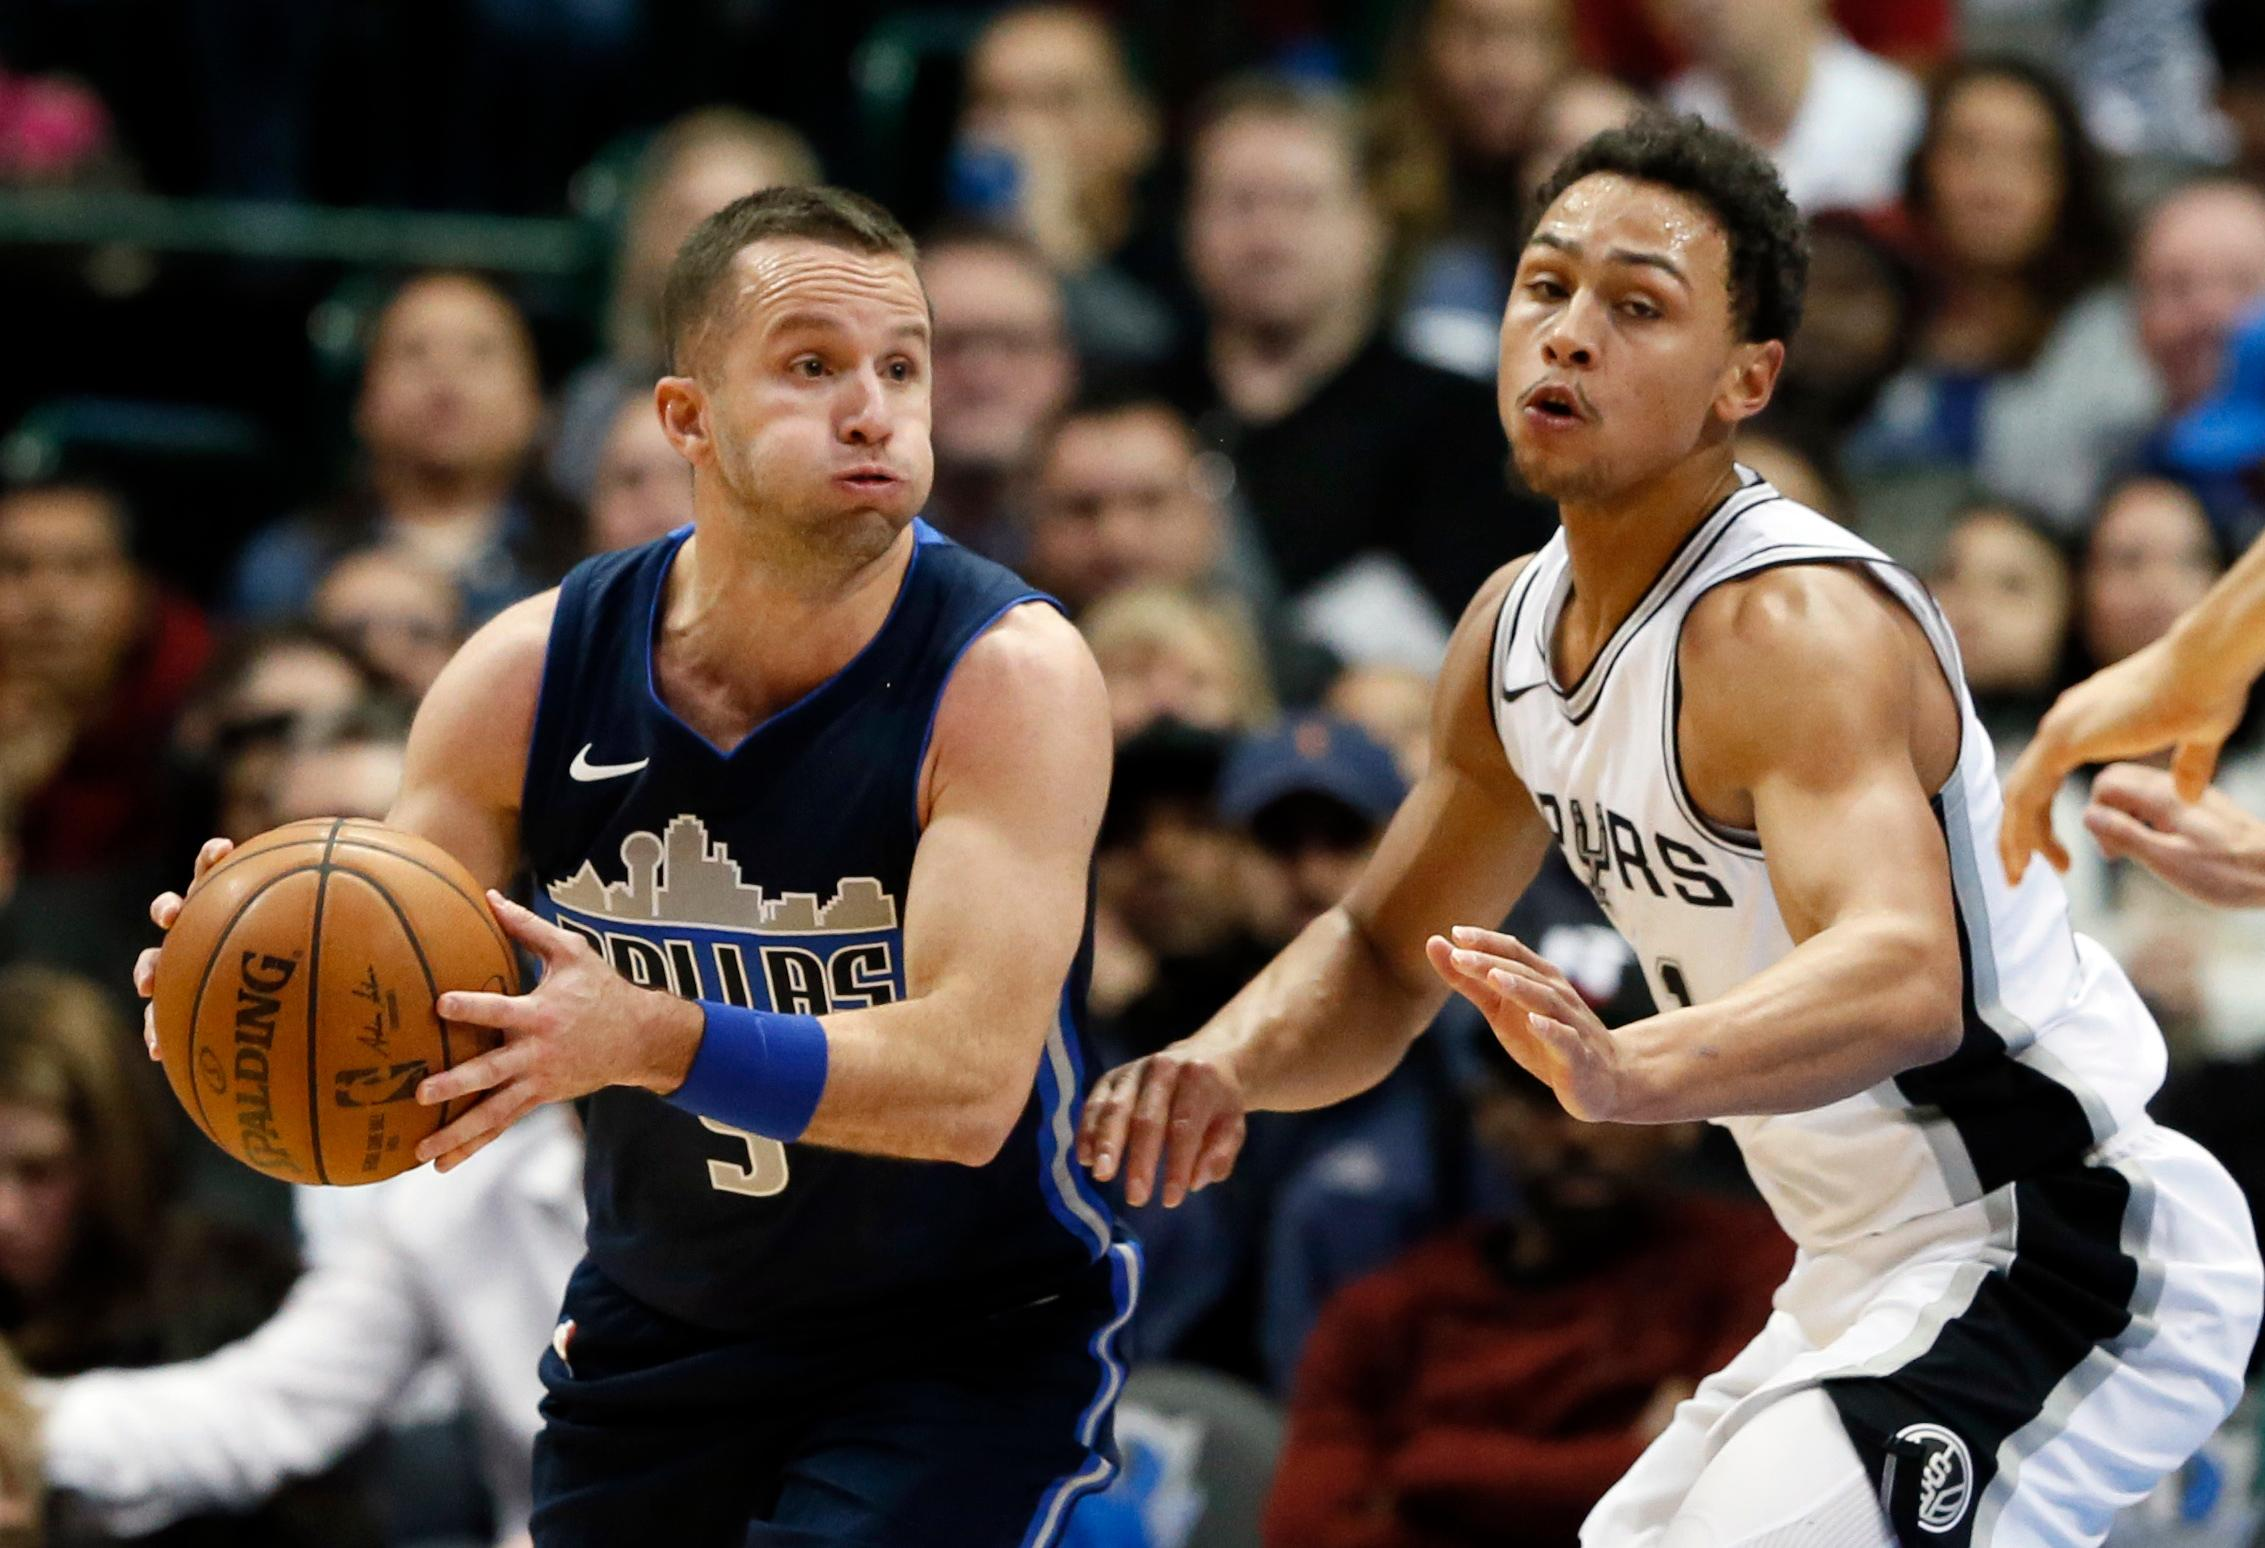 Dallas Mavericks guard J.J. Barea (5) of Puerto Rico looks to make a pass as San Antonio Spurs' Bryn Forbes (11) defends in the second half of an NBA basketball game, Tuesday, Dec. 12, 2017, in Dallas. The Mavericks won, 95-89. (AP Photo/Tony Gutierrez)